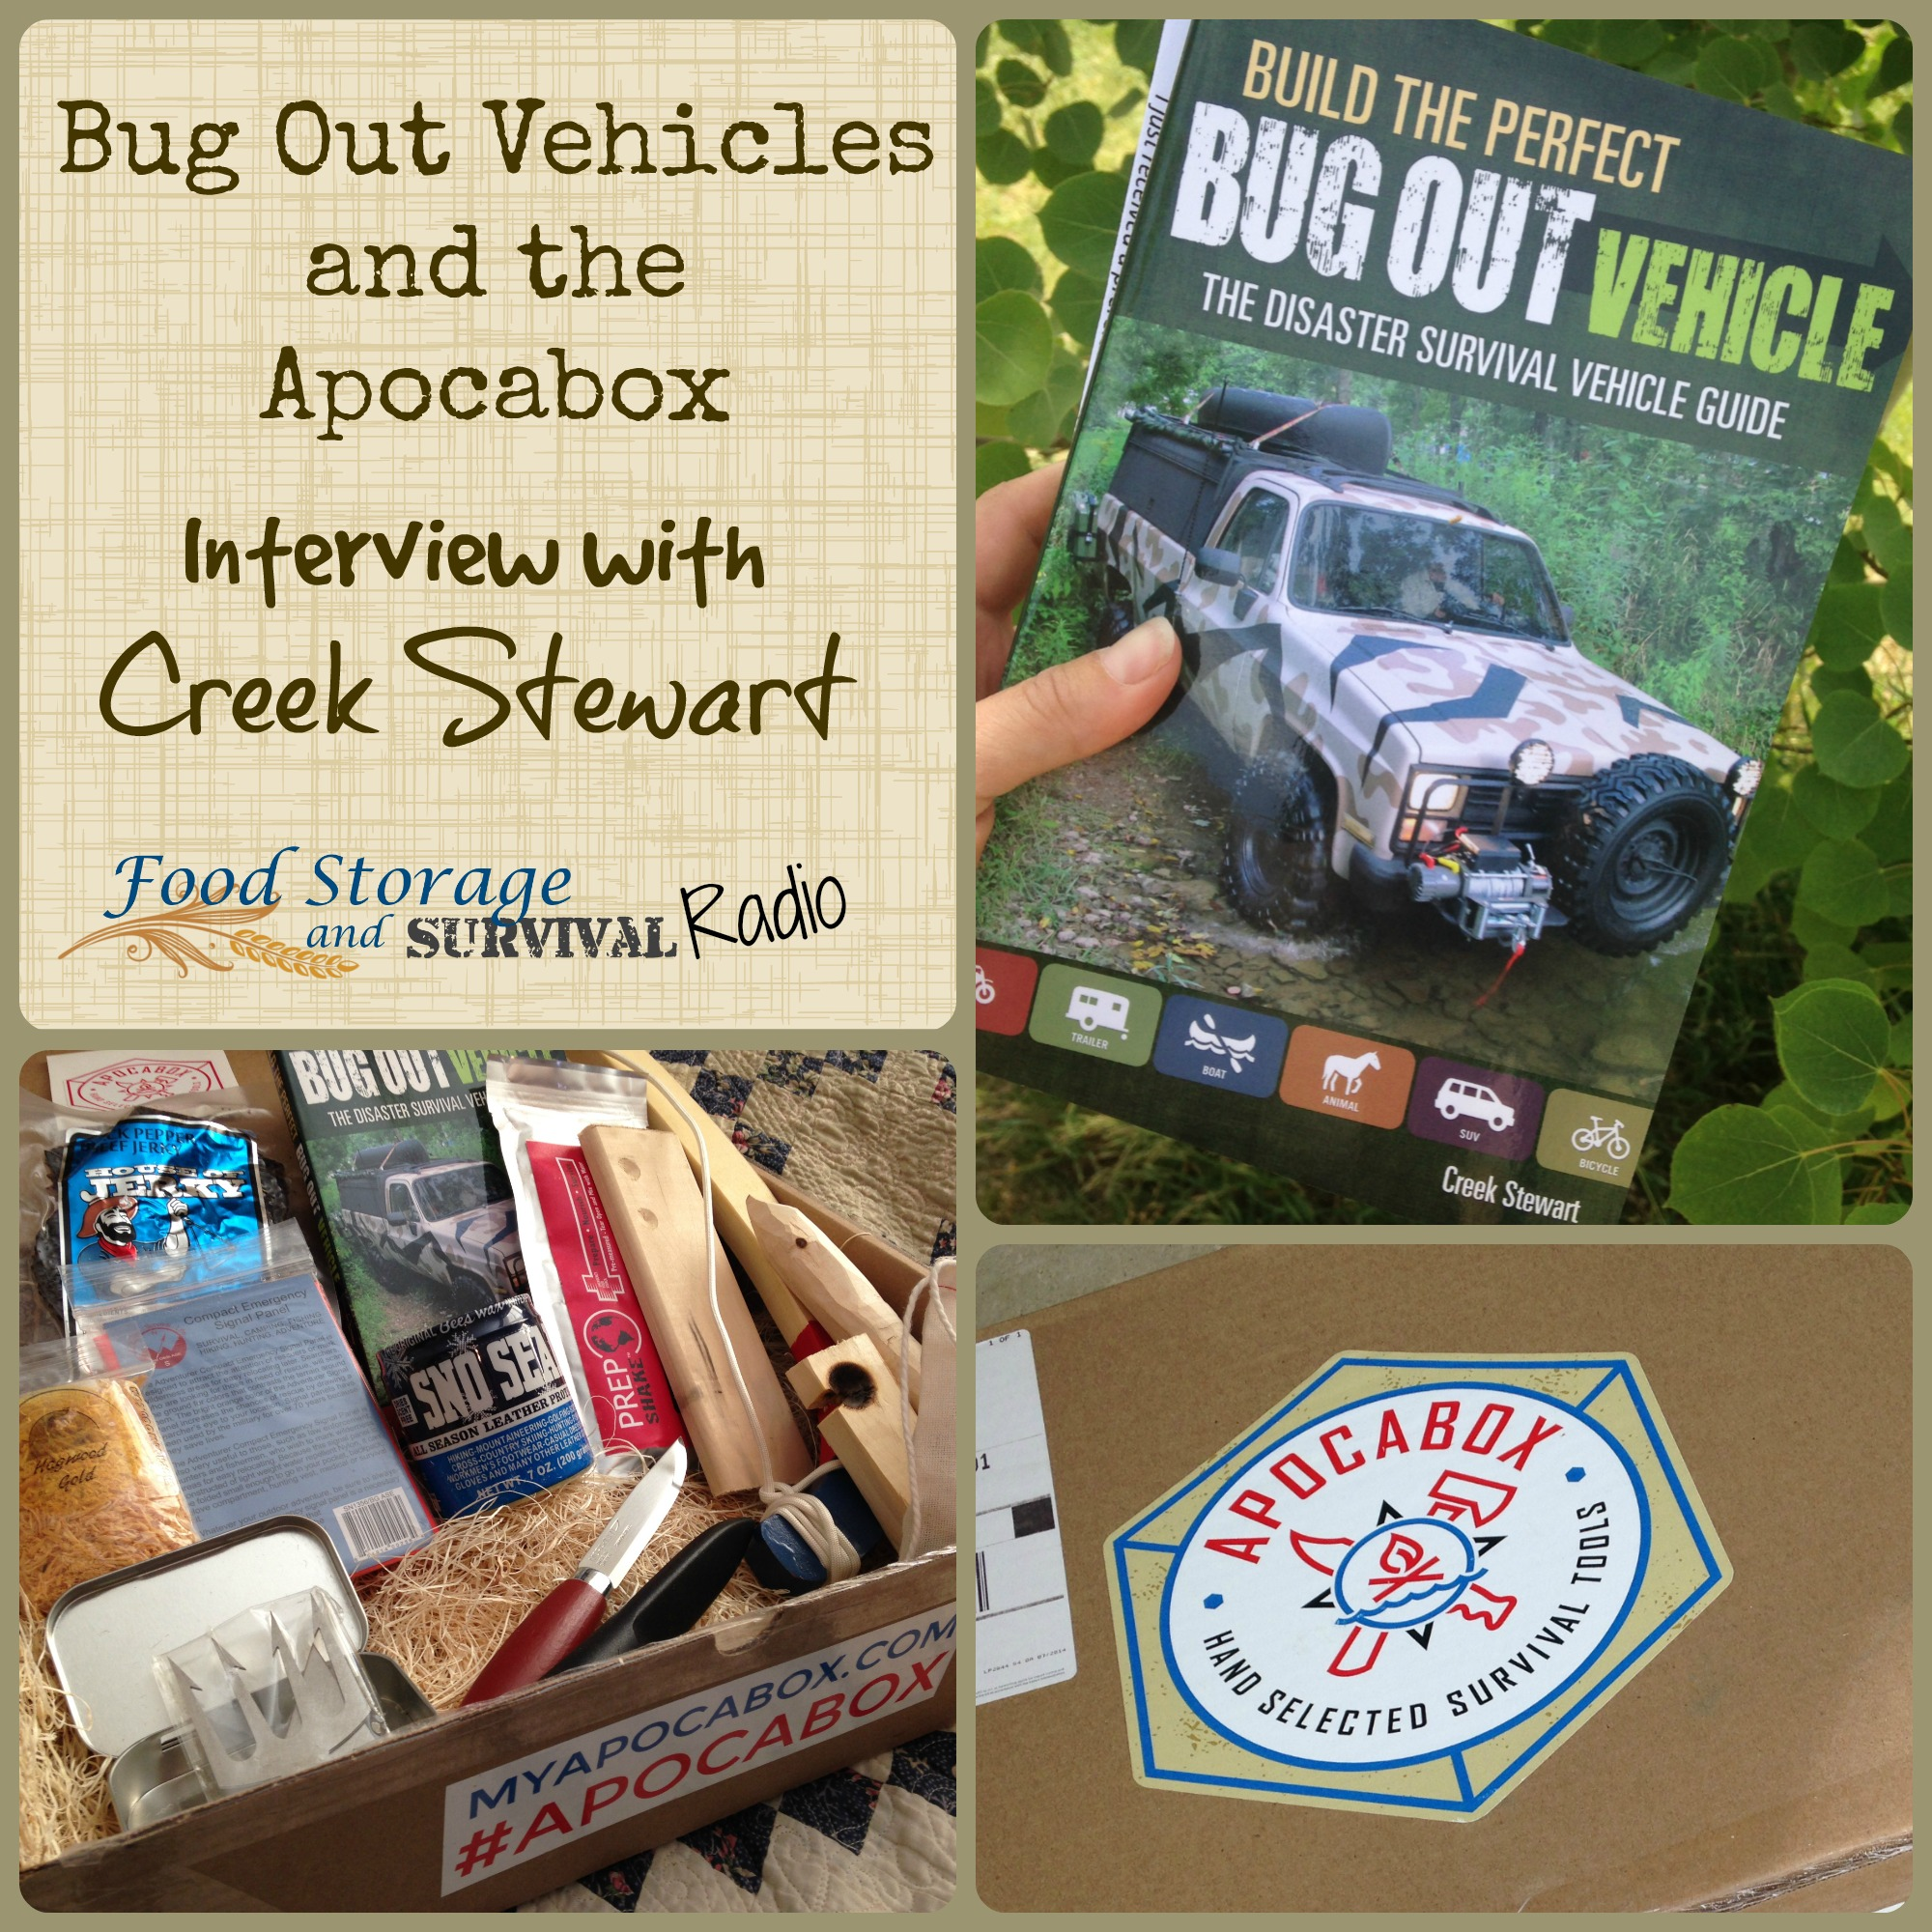 Food Storage and Survival Radio Episode 68: Bug Out Vehicles and the Apocabox with Creek Stewart